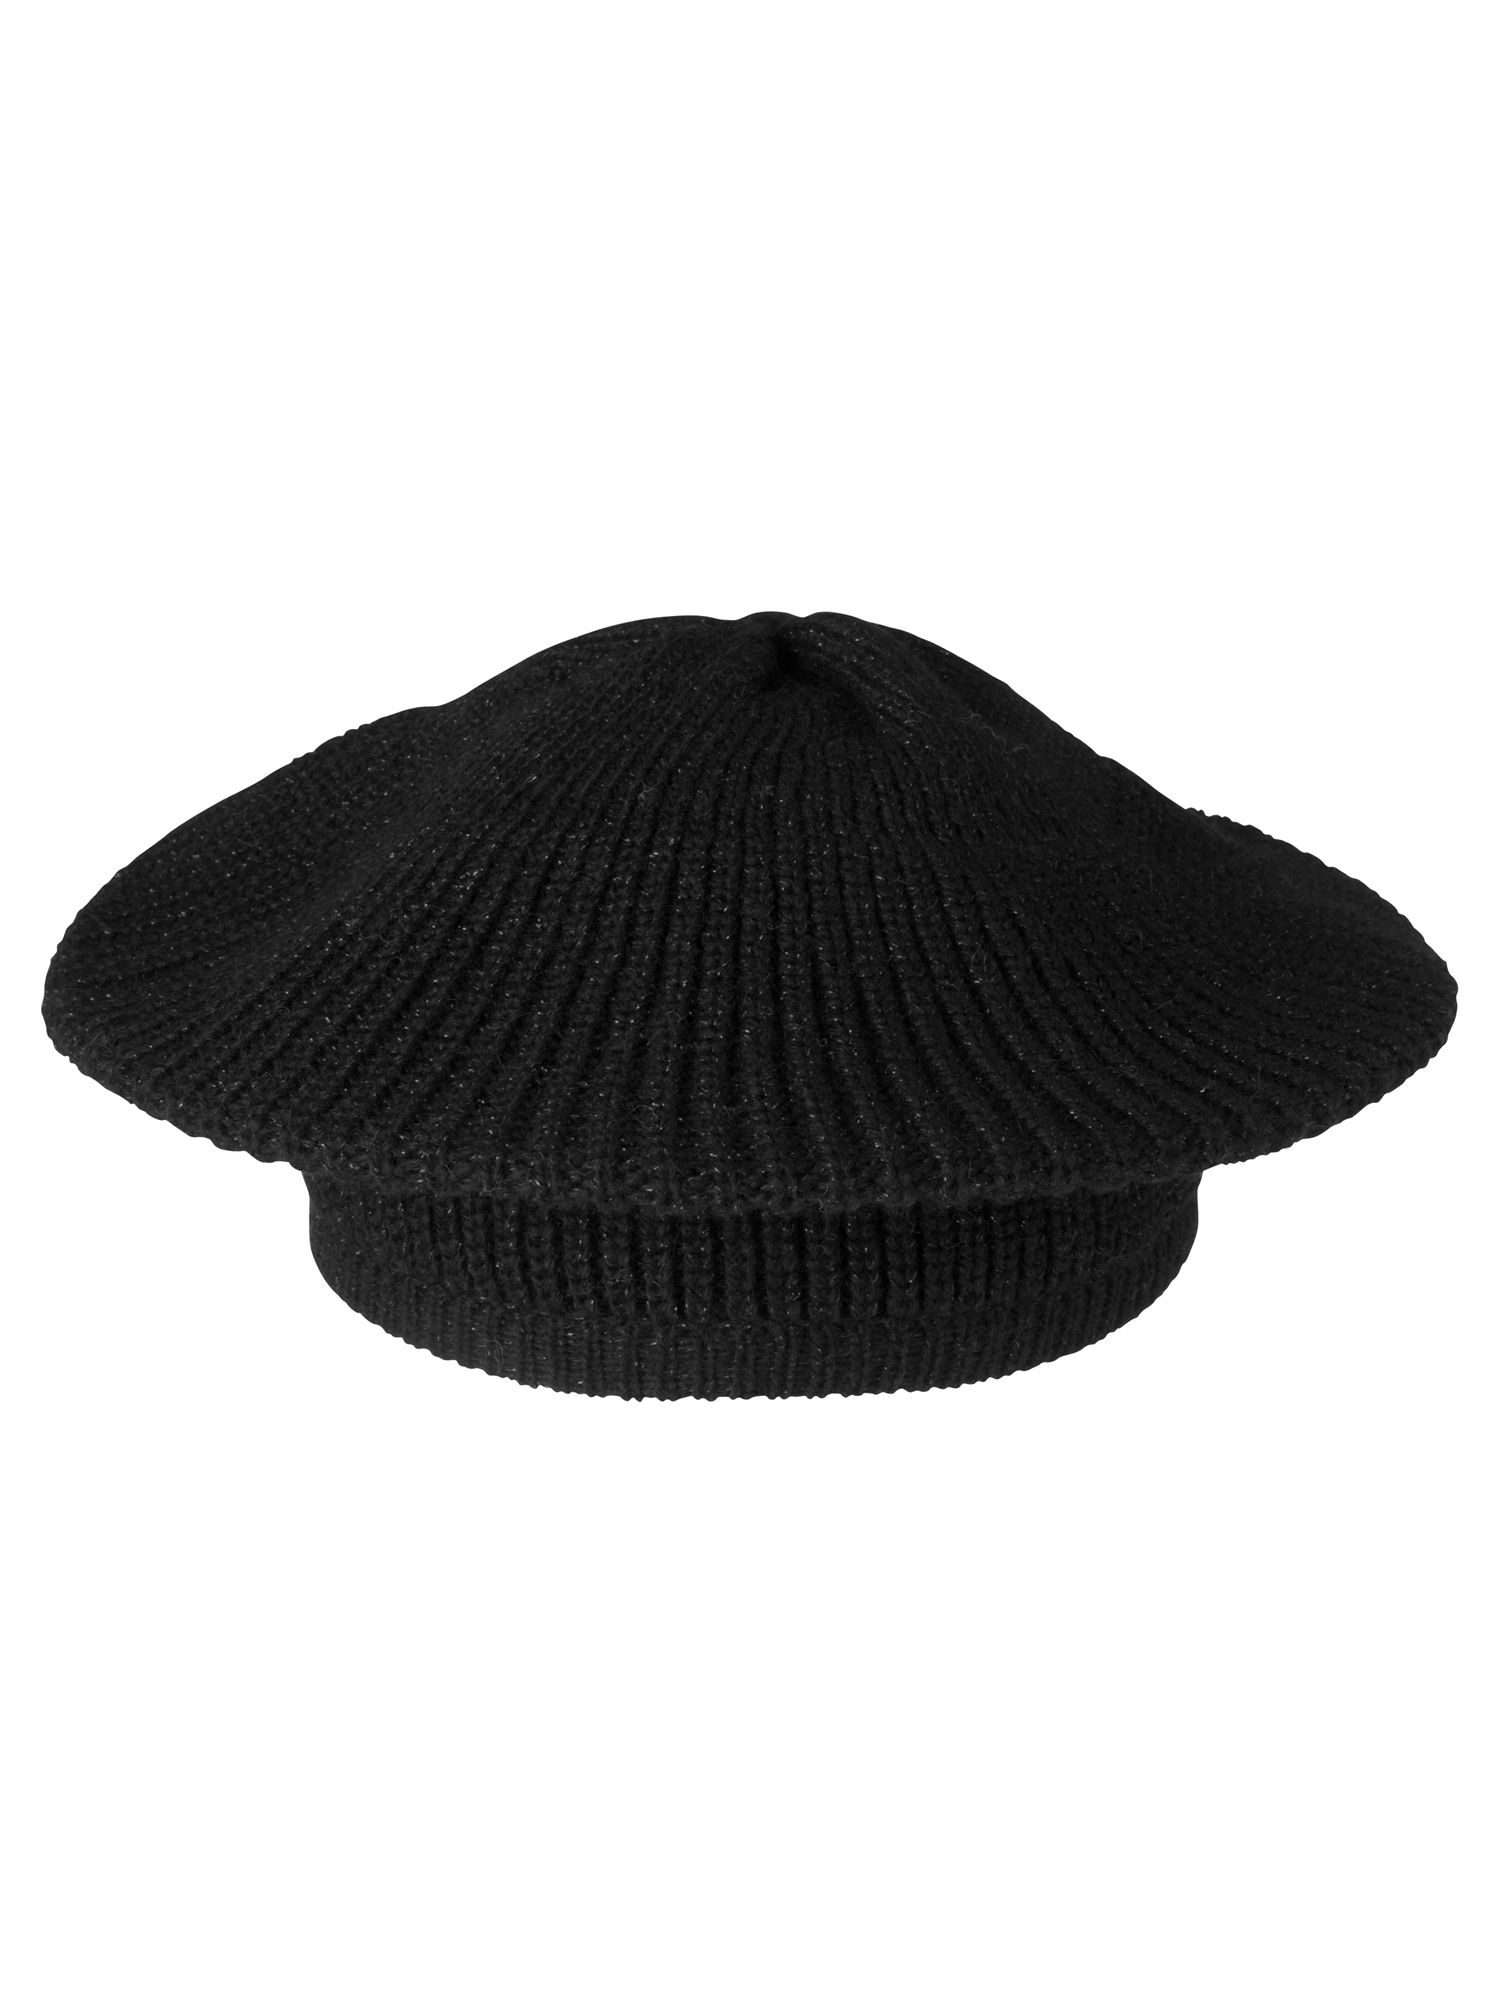 Beret with lurex